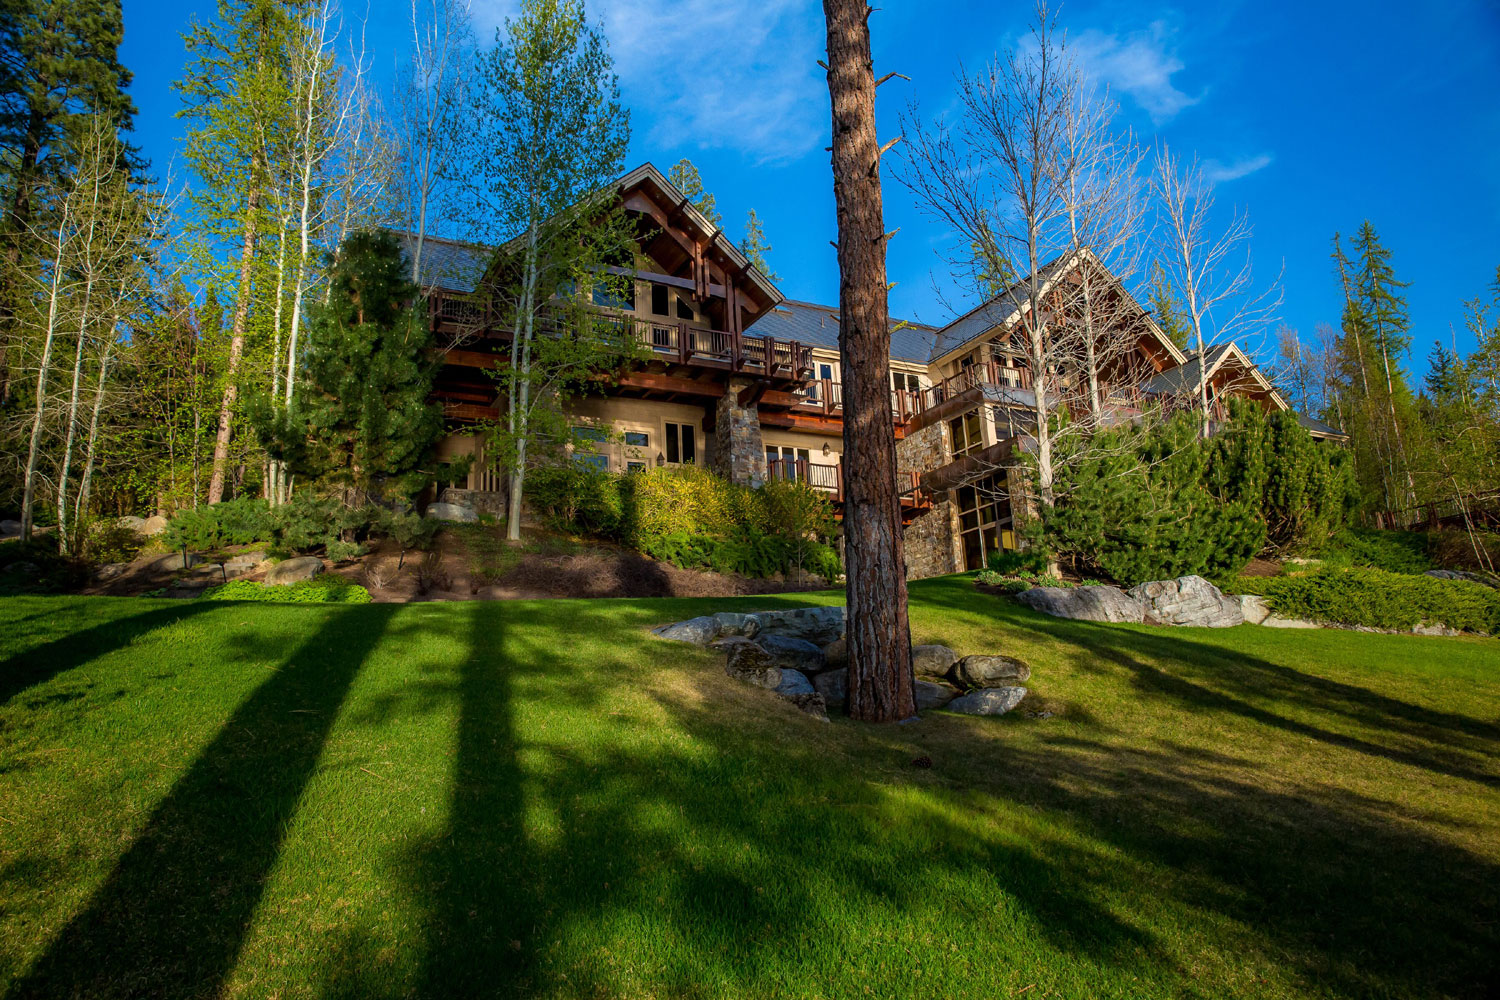 At Eagles Rest, guests may luxuriate amid 15,000 square feet of grand, lodge-style living and entertaining areas on the shores of Flathead Lake in the Rocky Mountain paradise of Flathead National Forest.